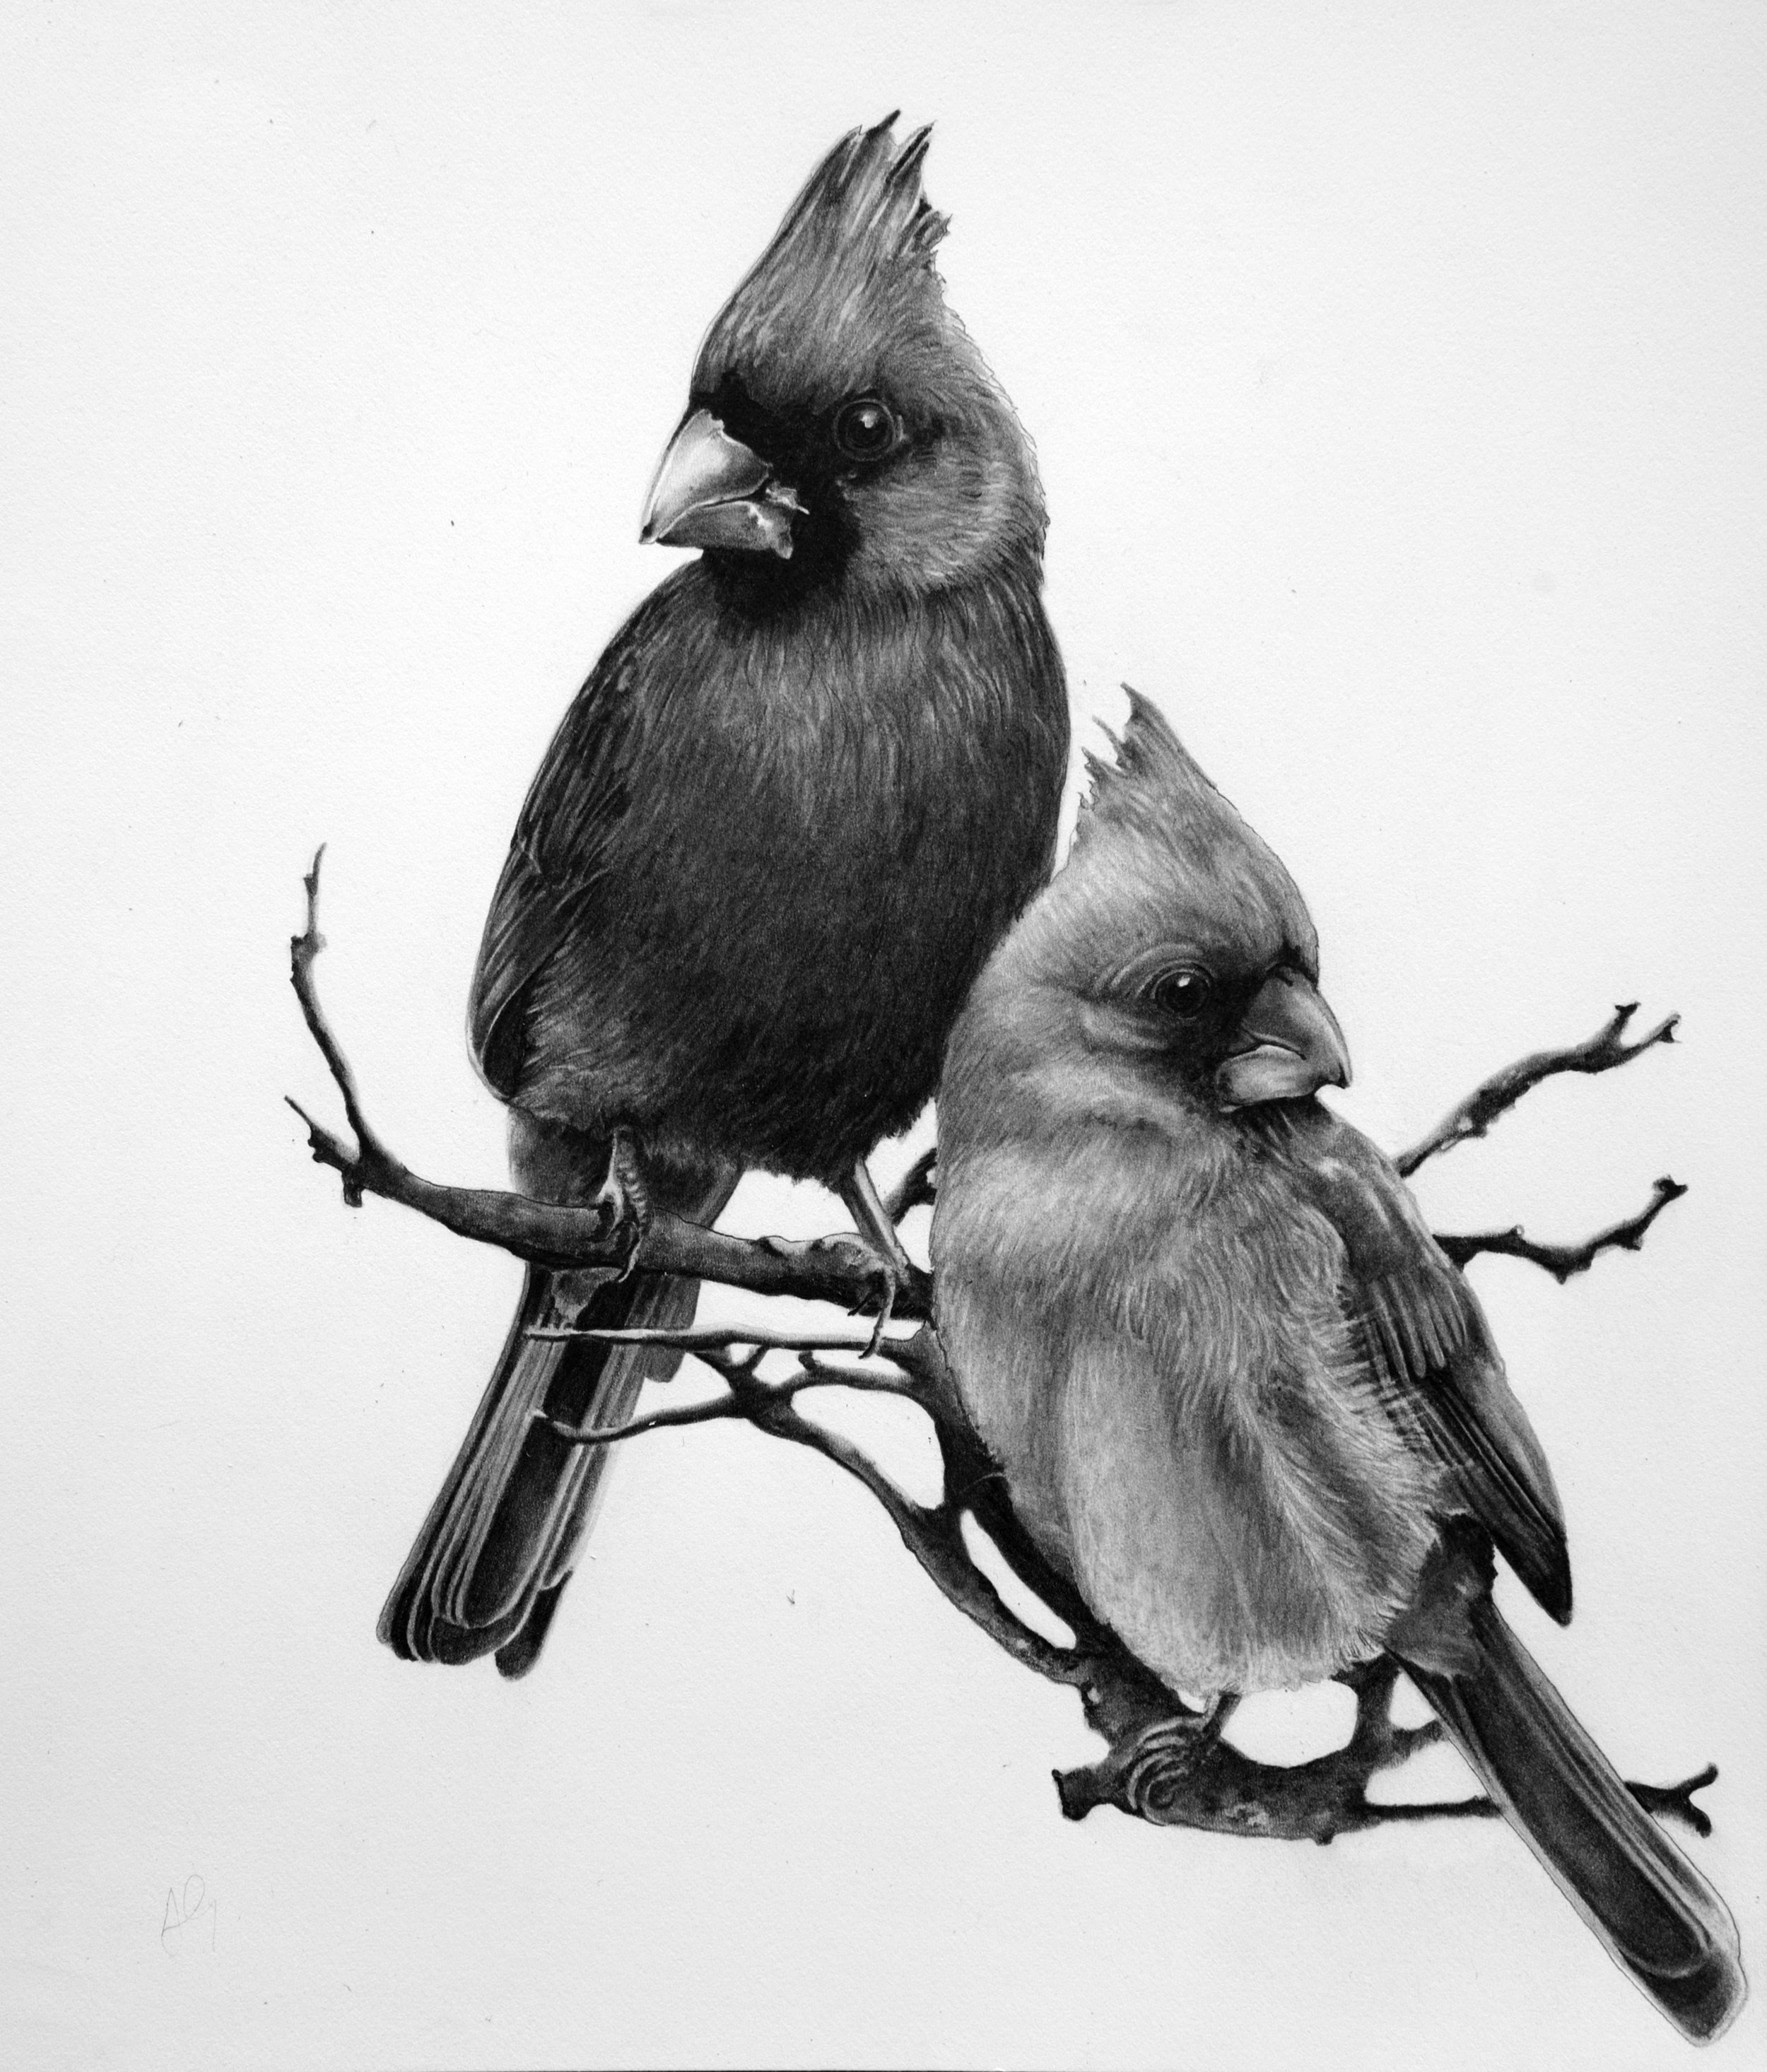 alicia-graden-cardinals-graphite-on-paper-pg-1.jpg